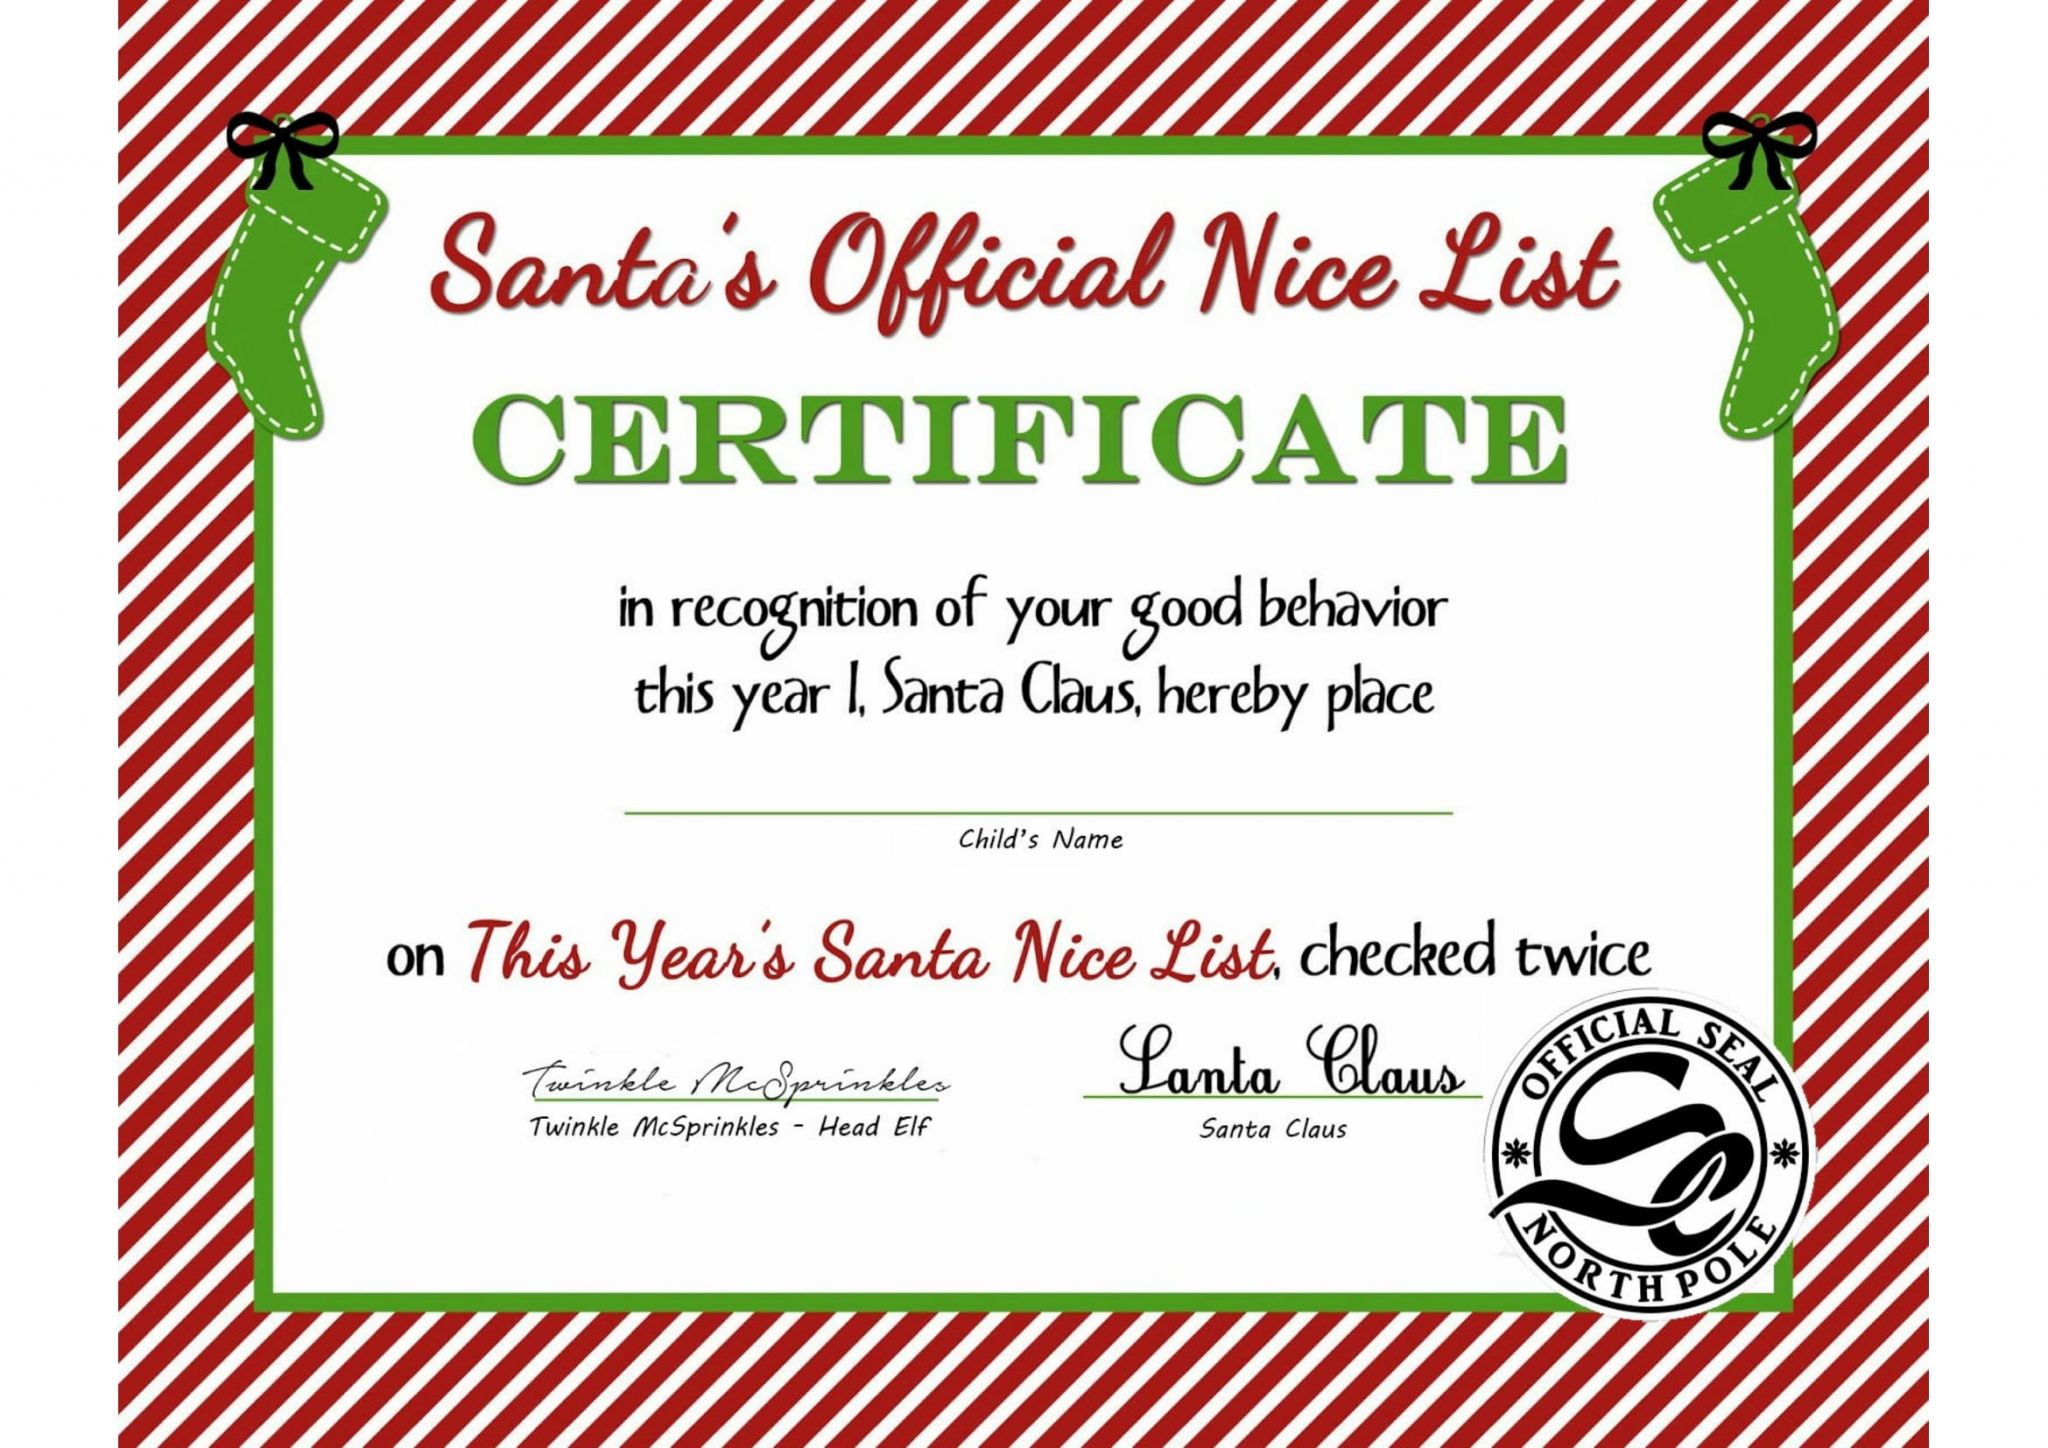 Adorable christmas eve traditions picniq blog nice list certificate xflitez Gallery